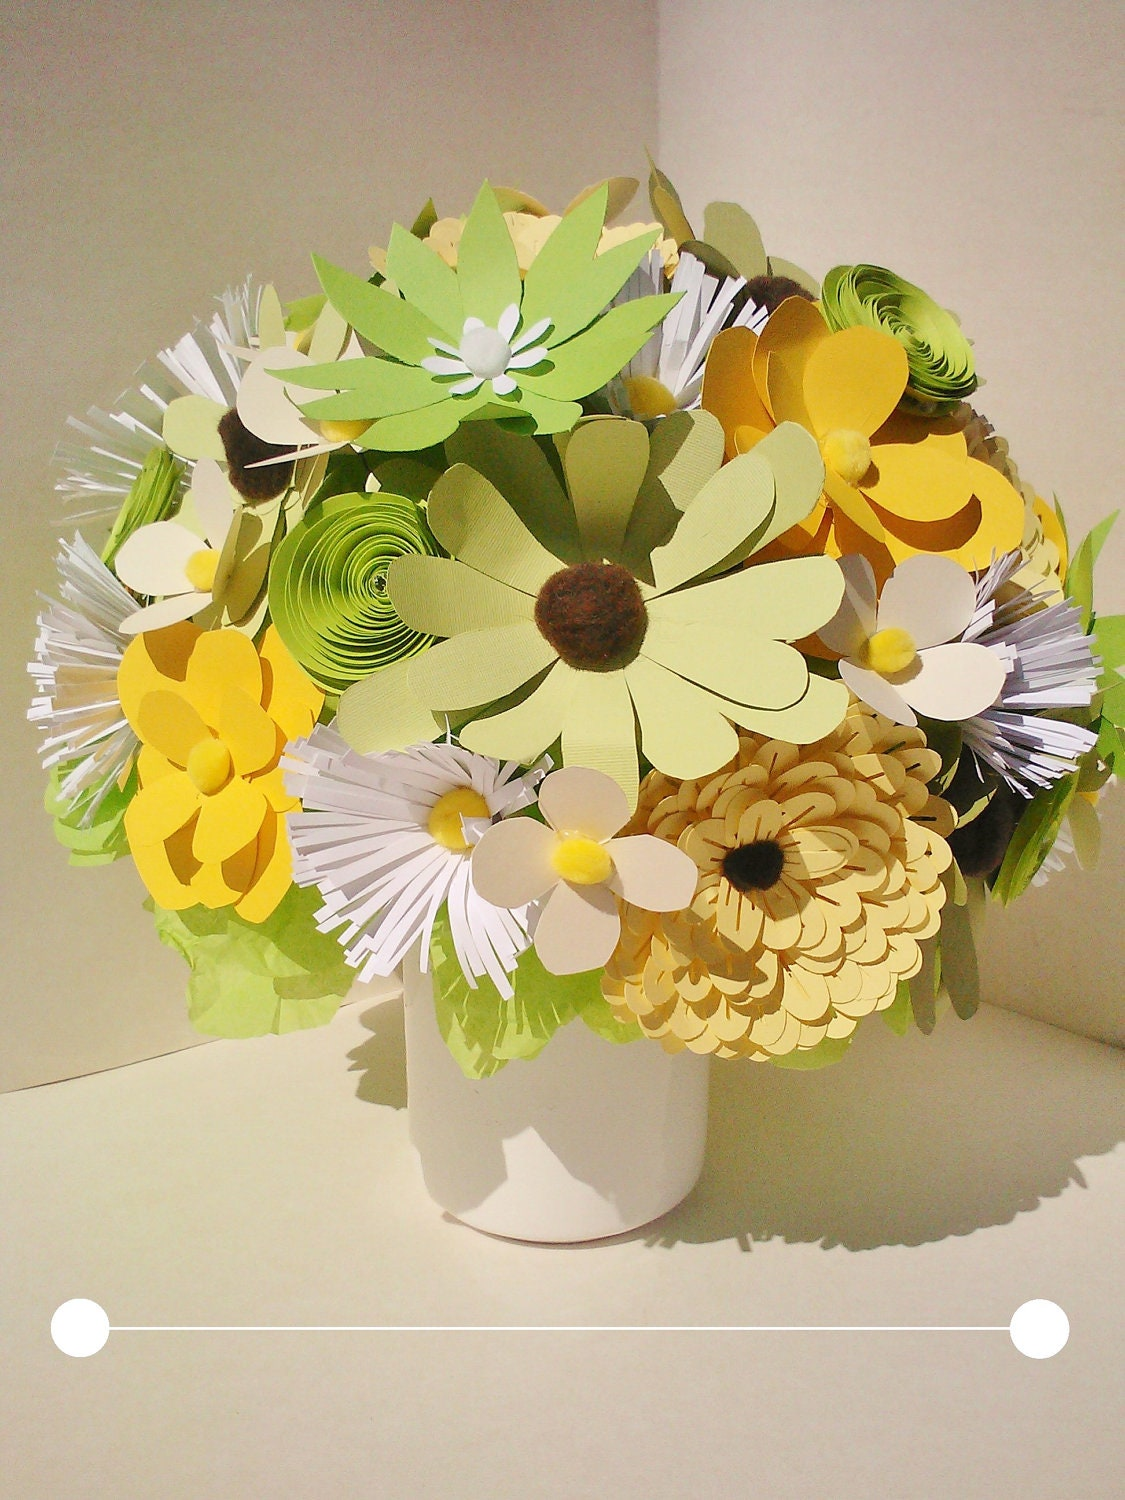 Large Centerpiece or Gift Bouquet